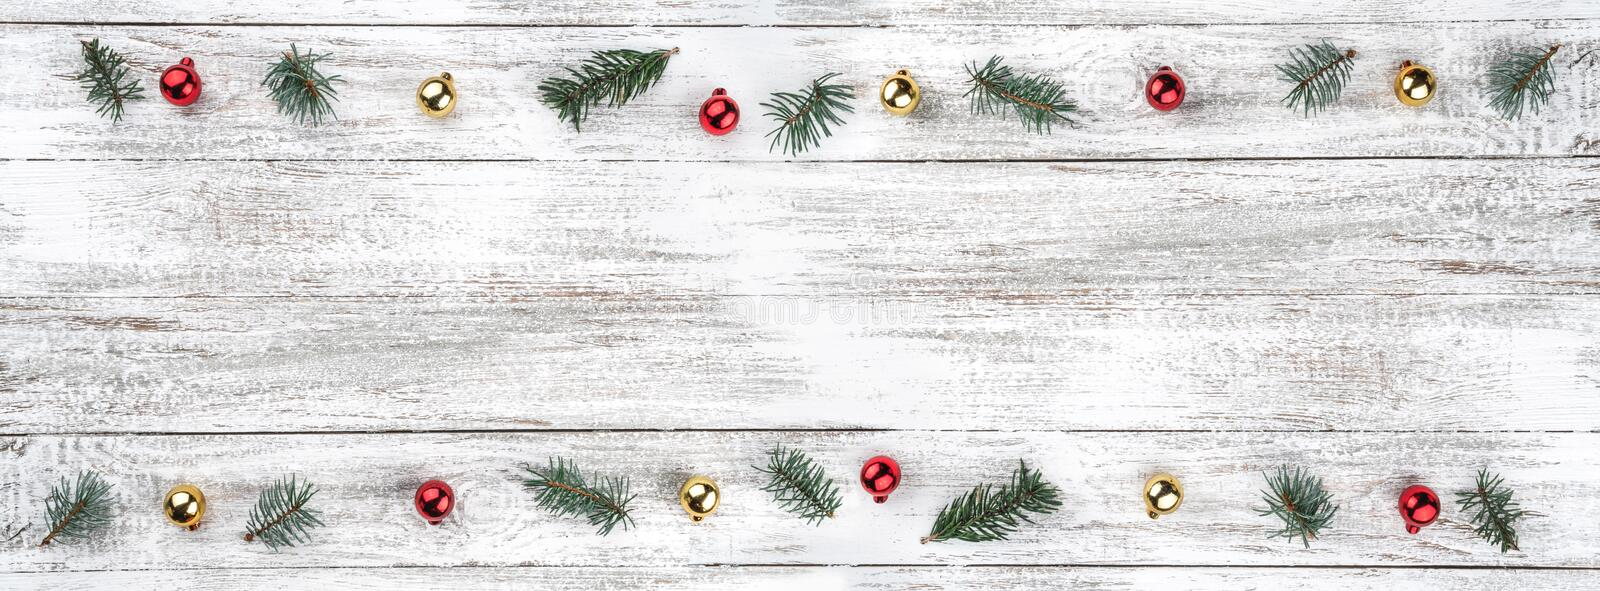 Old wooden Christmas background. Fir branches. Gold and red baubles. Christmas card. Top view. Space for your text. Horizontally card royalty free stock image